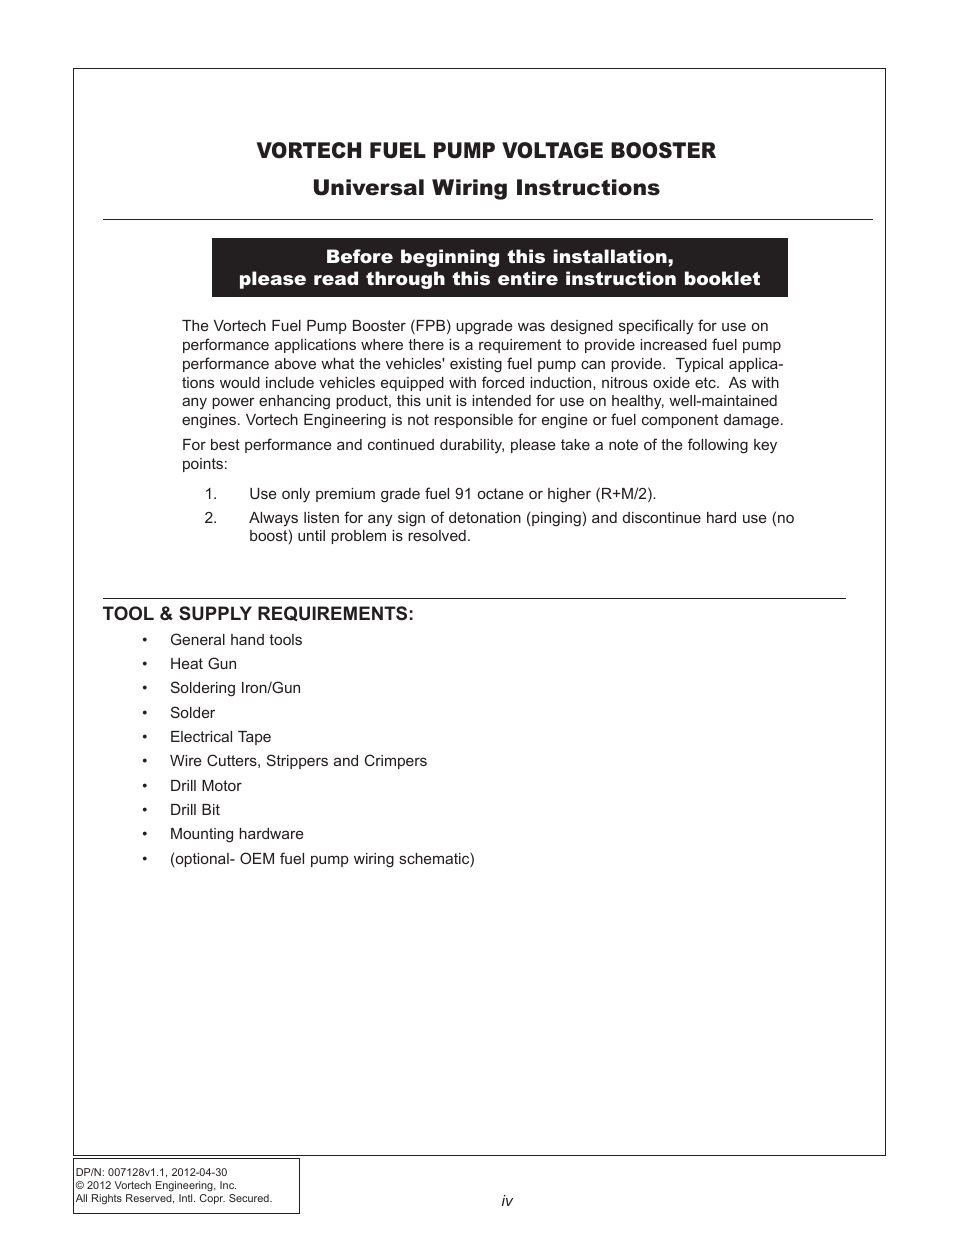 medium resolution of vortech maxflo fuel pump booster fpb universal fit user manual page 4 13